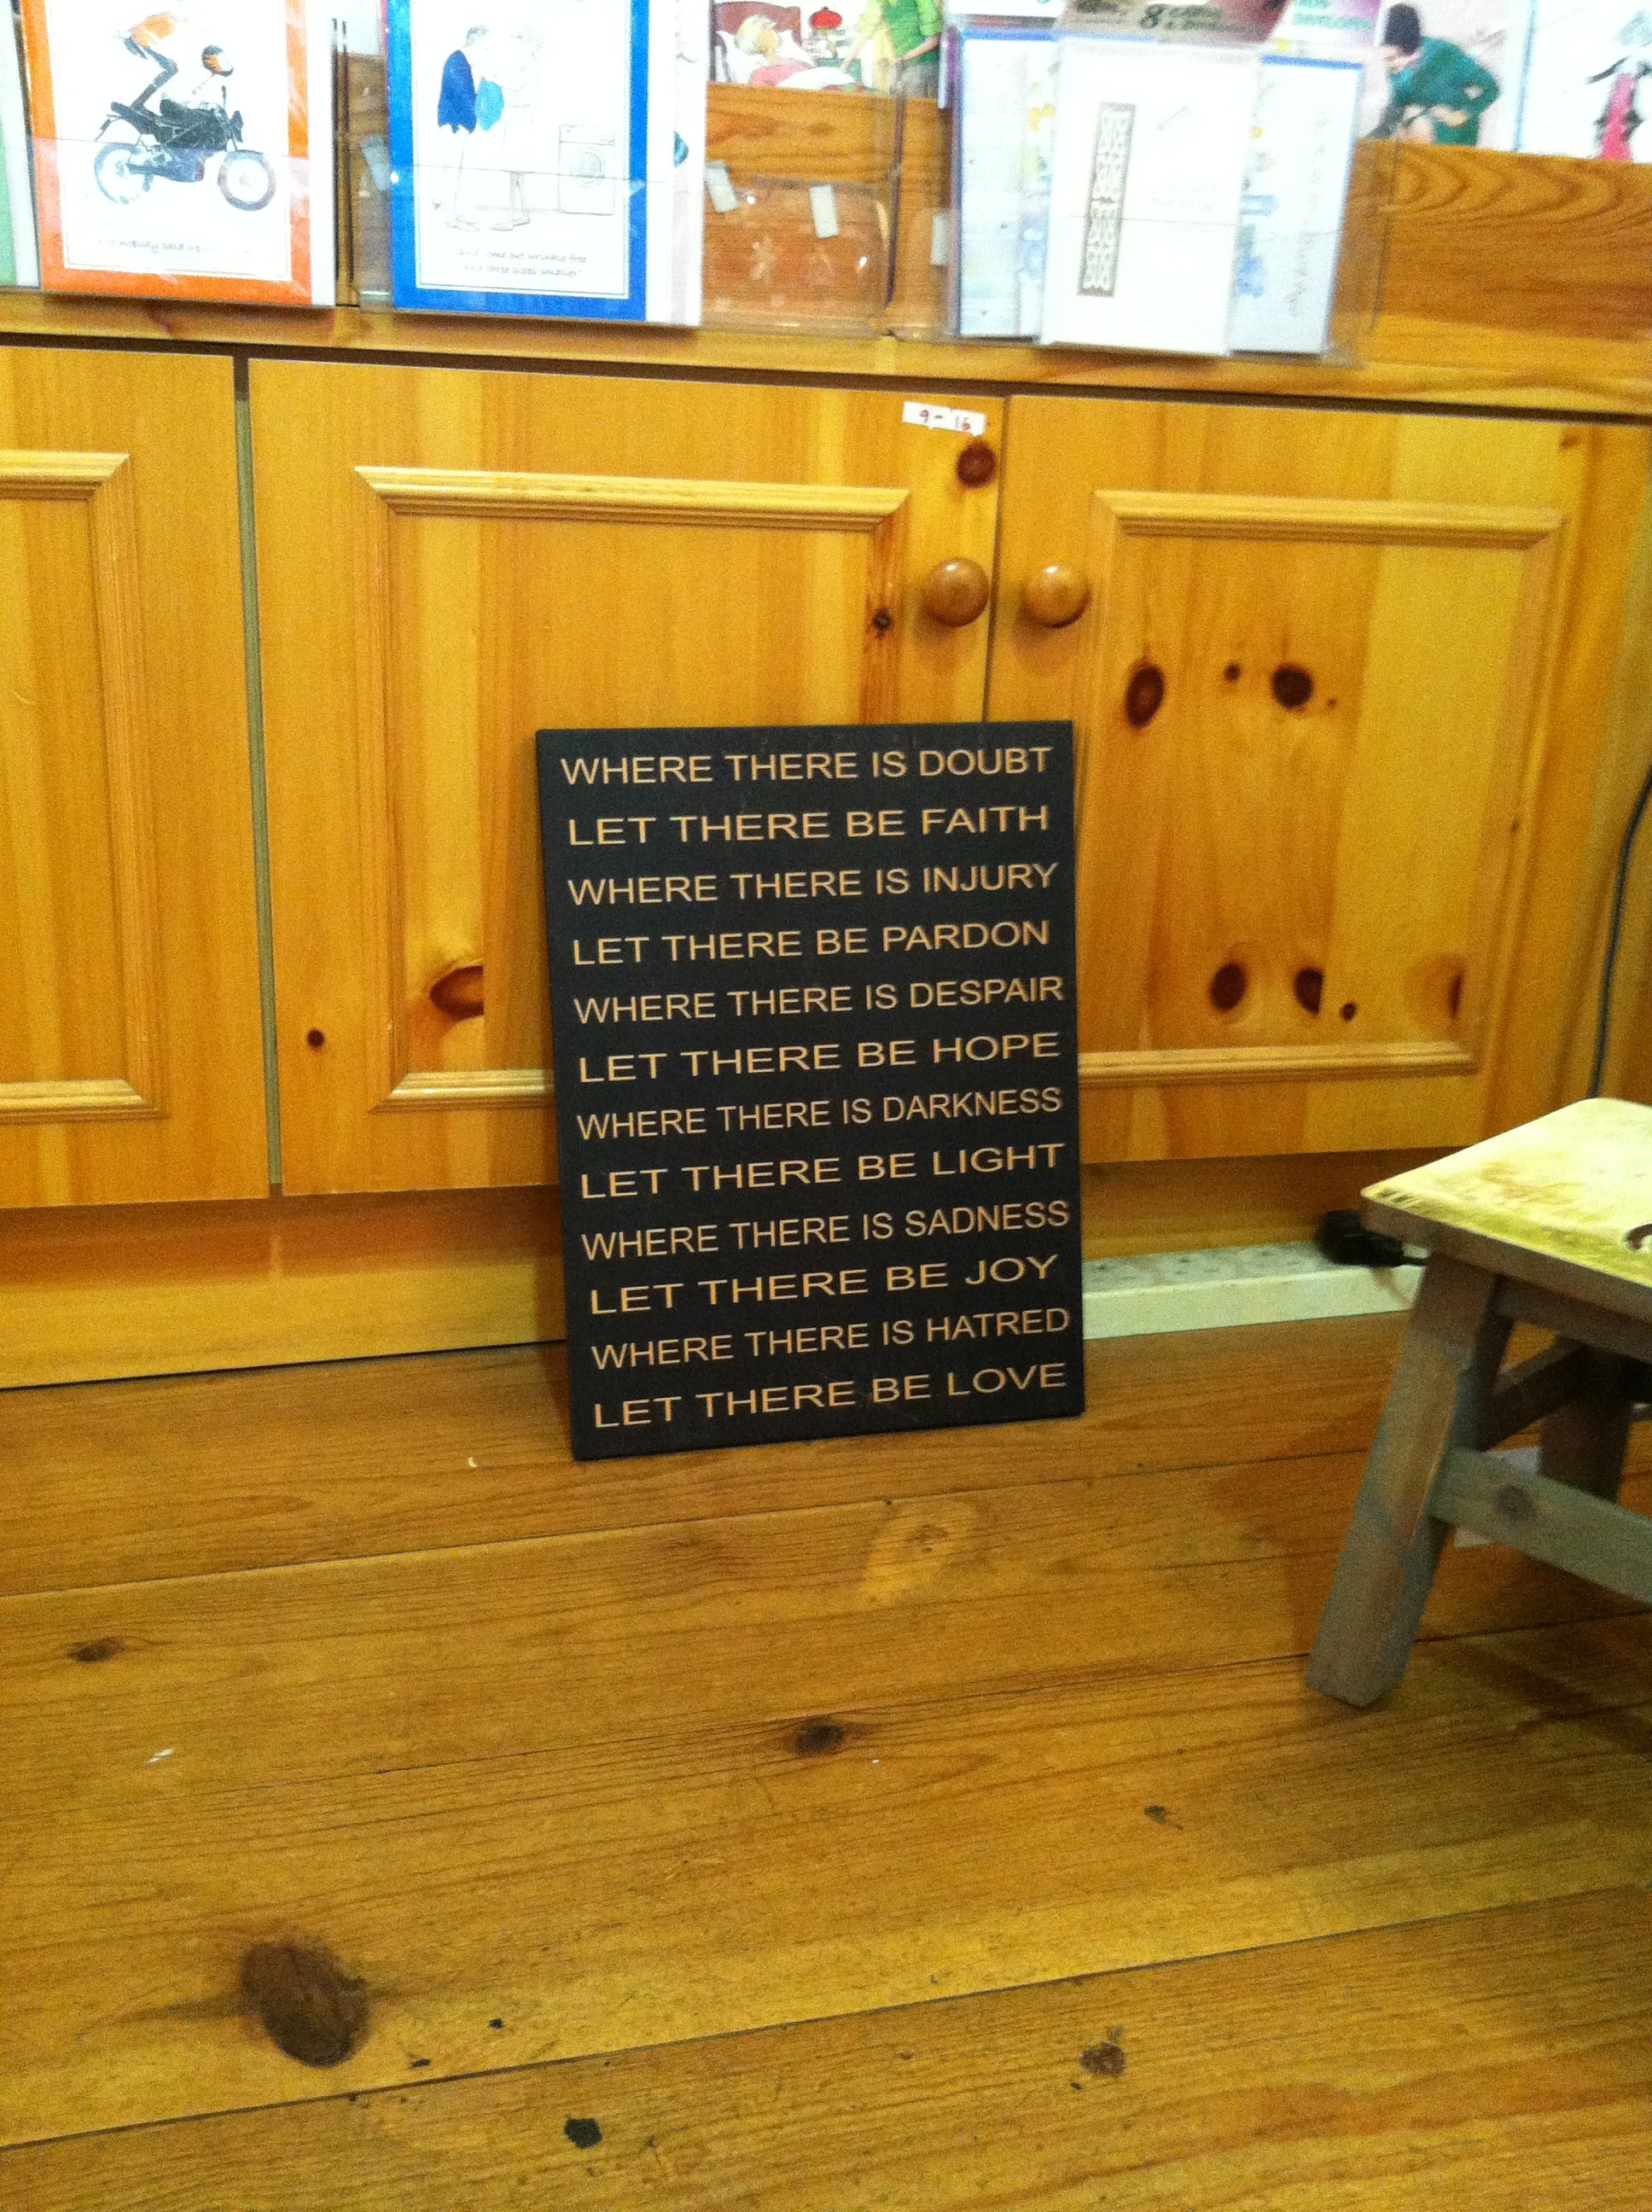 What an appropriate prayer to find in Westgate Design on St. Francis' feast day!